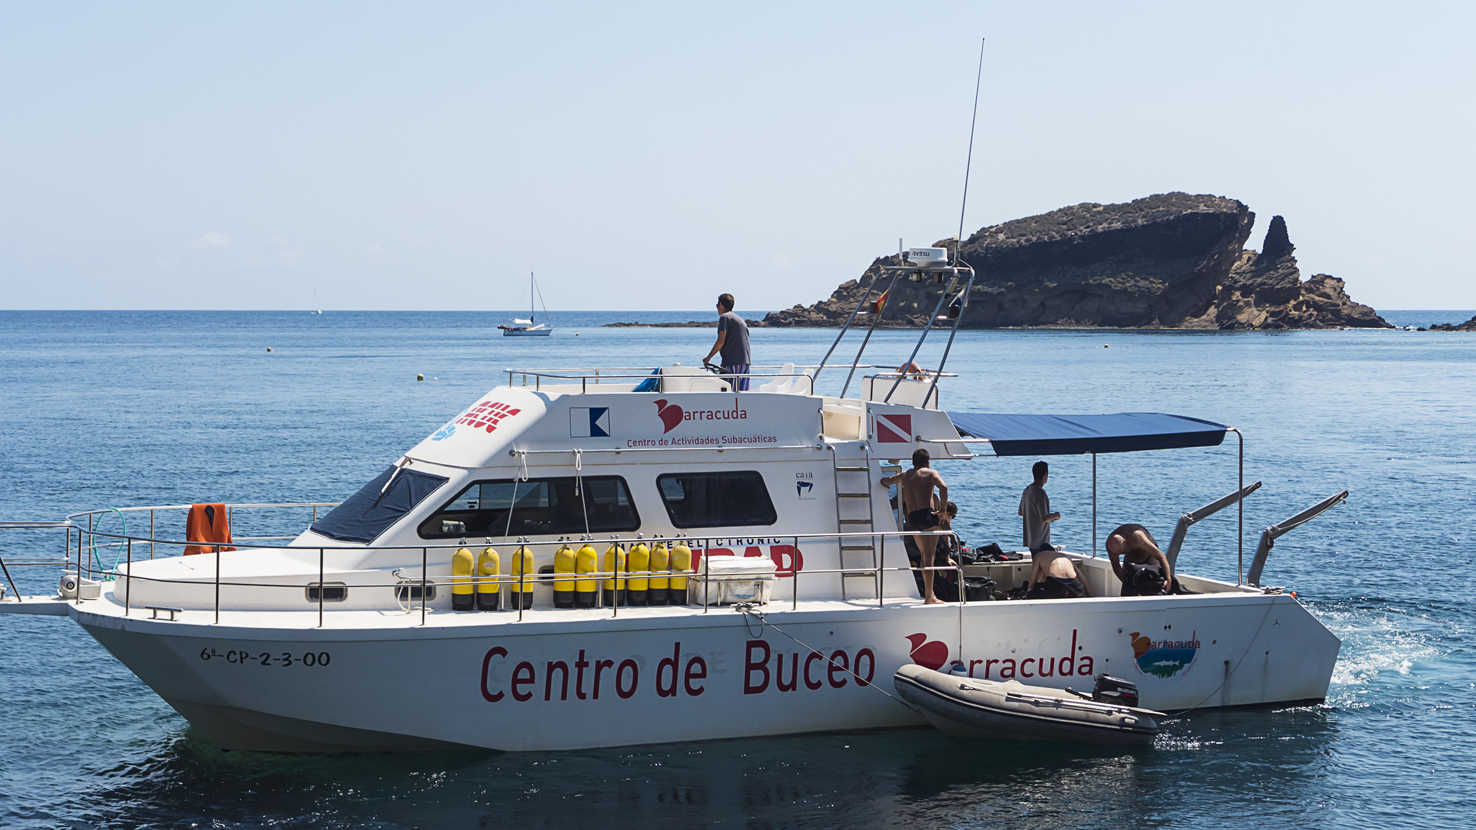 Barracuda Club de Buceo (FEDAS/ACUC)